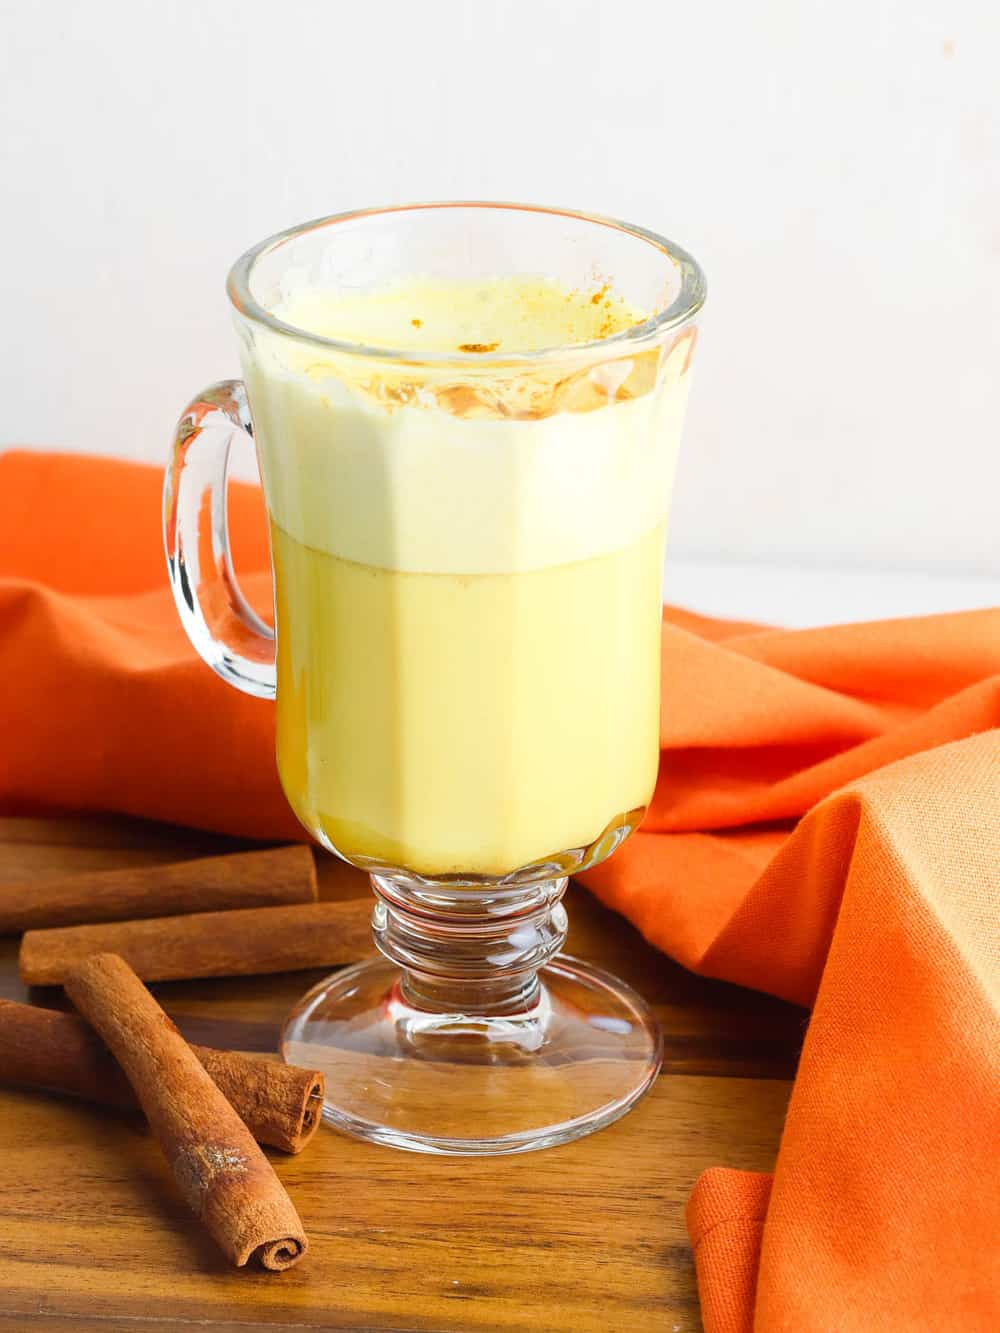 golden milk latte (or turmeric latte) in a glass cup with cinnamon, against an orange background